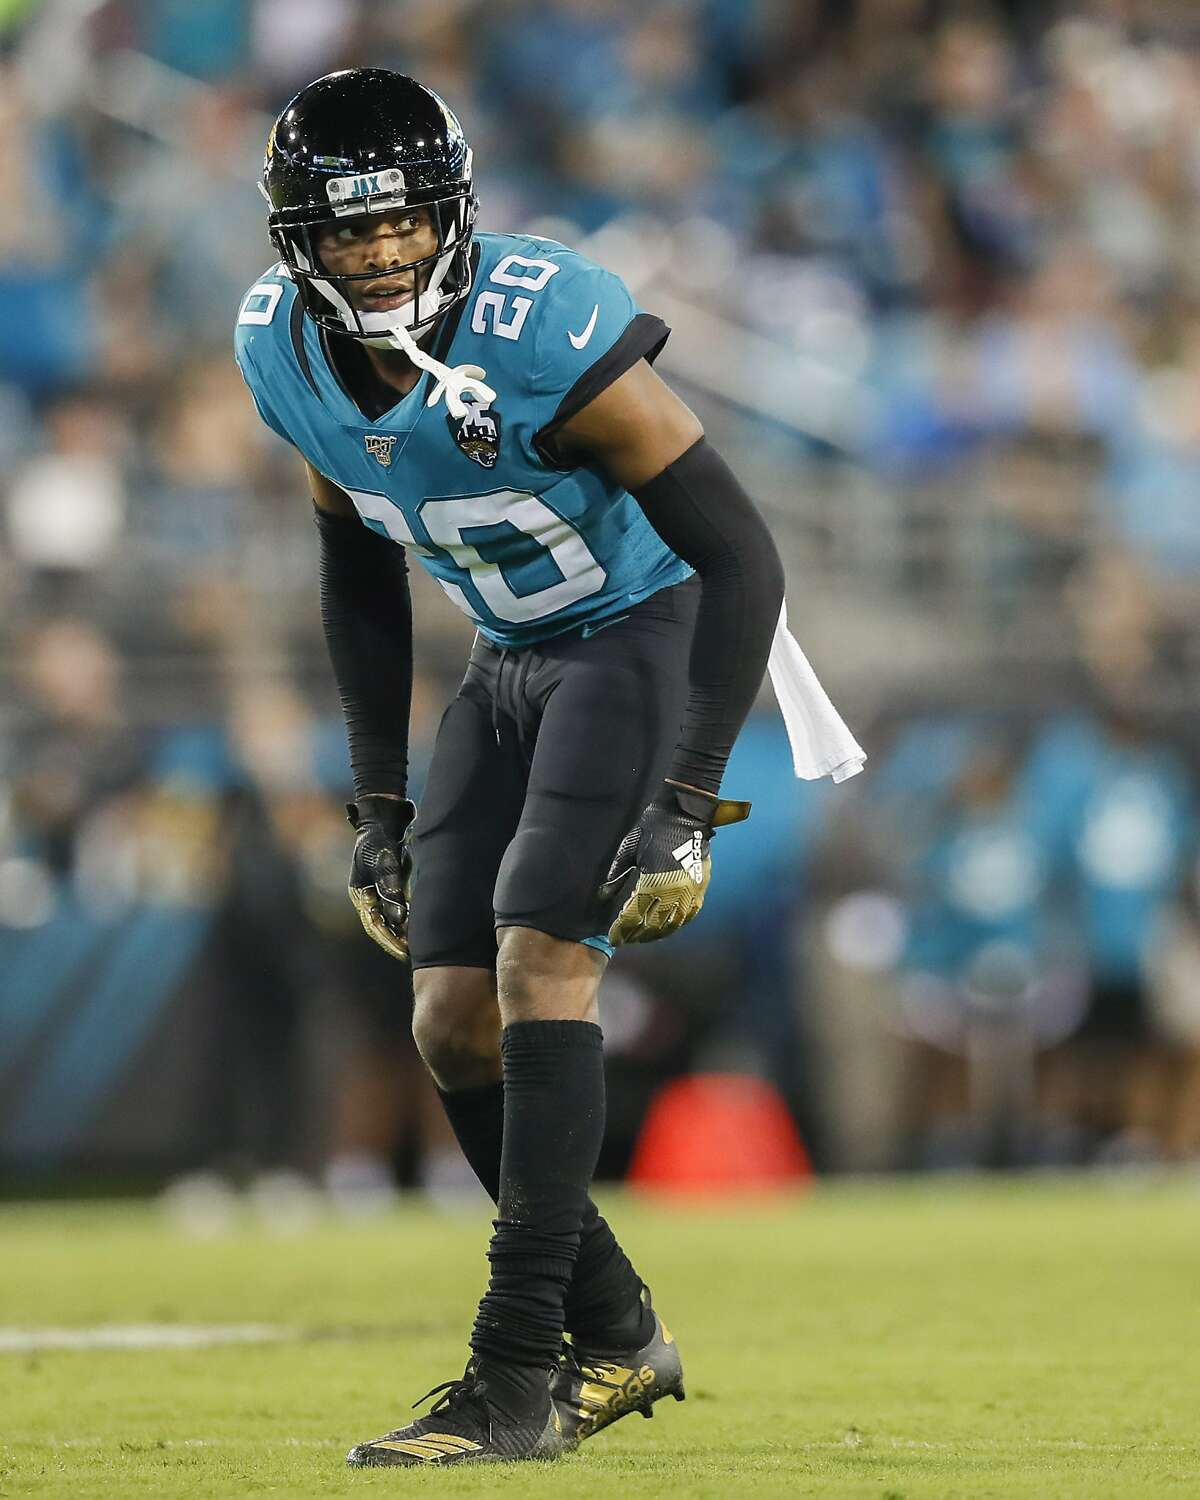 Jalen Ramsey #20 of the Jacksonville Jaguars looks on during the second half of a game against the Tennessee Titans at TIAA Bank Field on September 19, 2019 in Jacksonville, Florida. (Photo by James Gilbert/Getty Images)